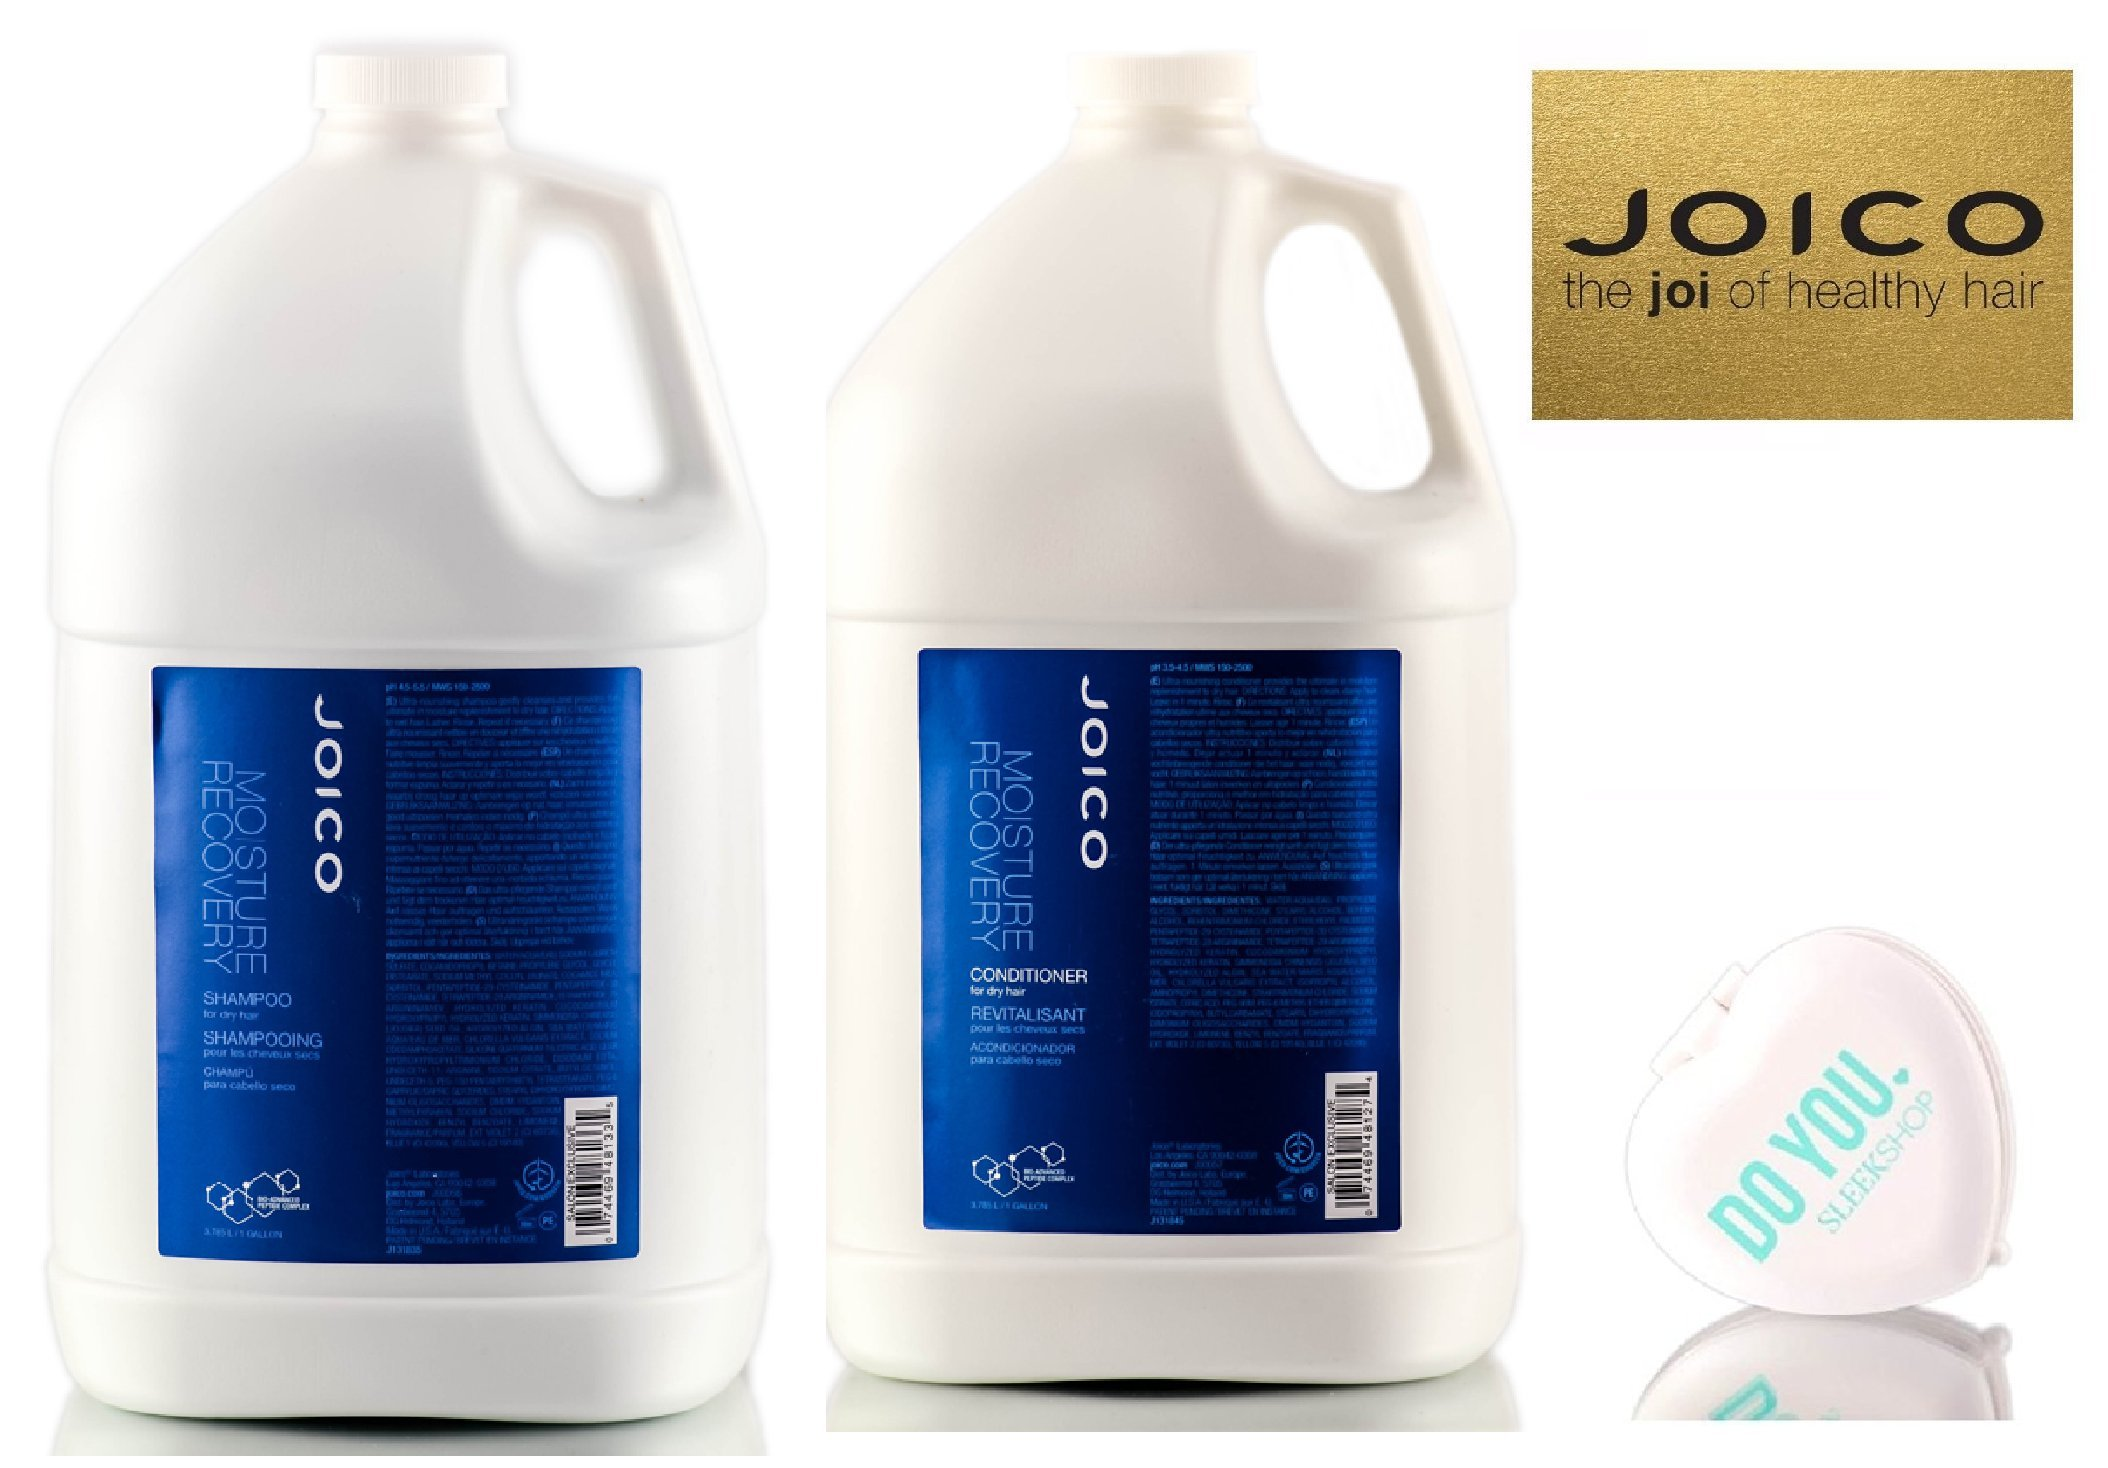 Joico Moisture Recovery Shampoo & Conditioner for dry hair DUO Set (with Sleek Compact Mirror) (128 oz / 1 Gallon Professional DUO Kit)